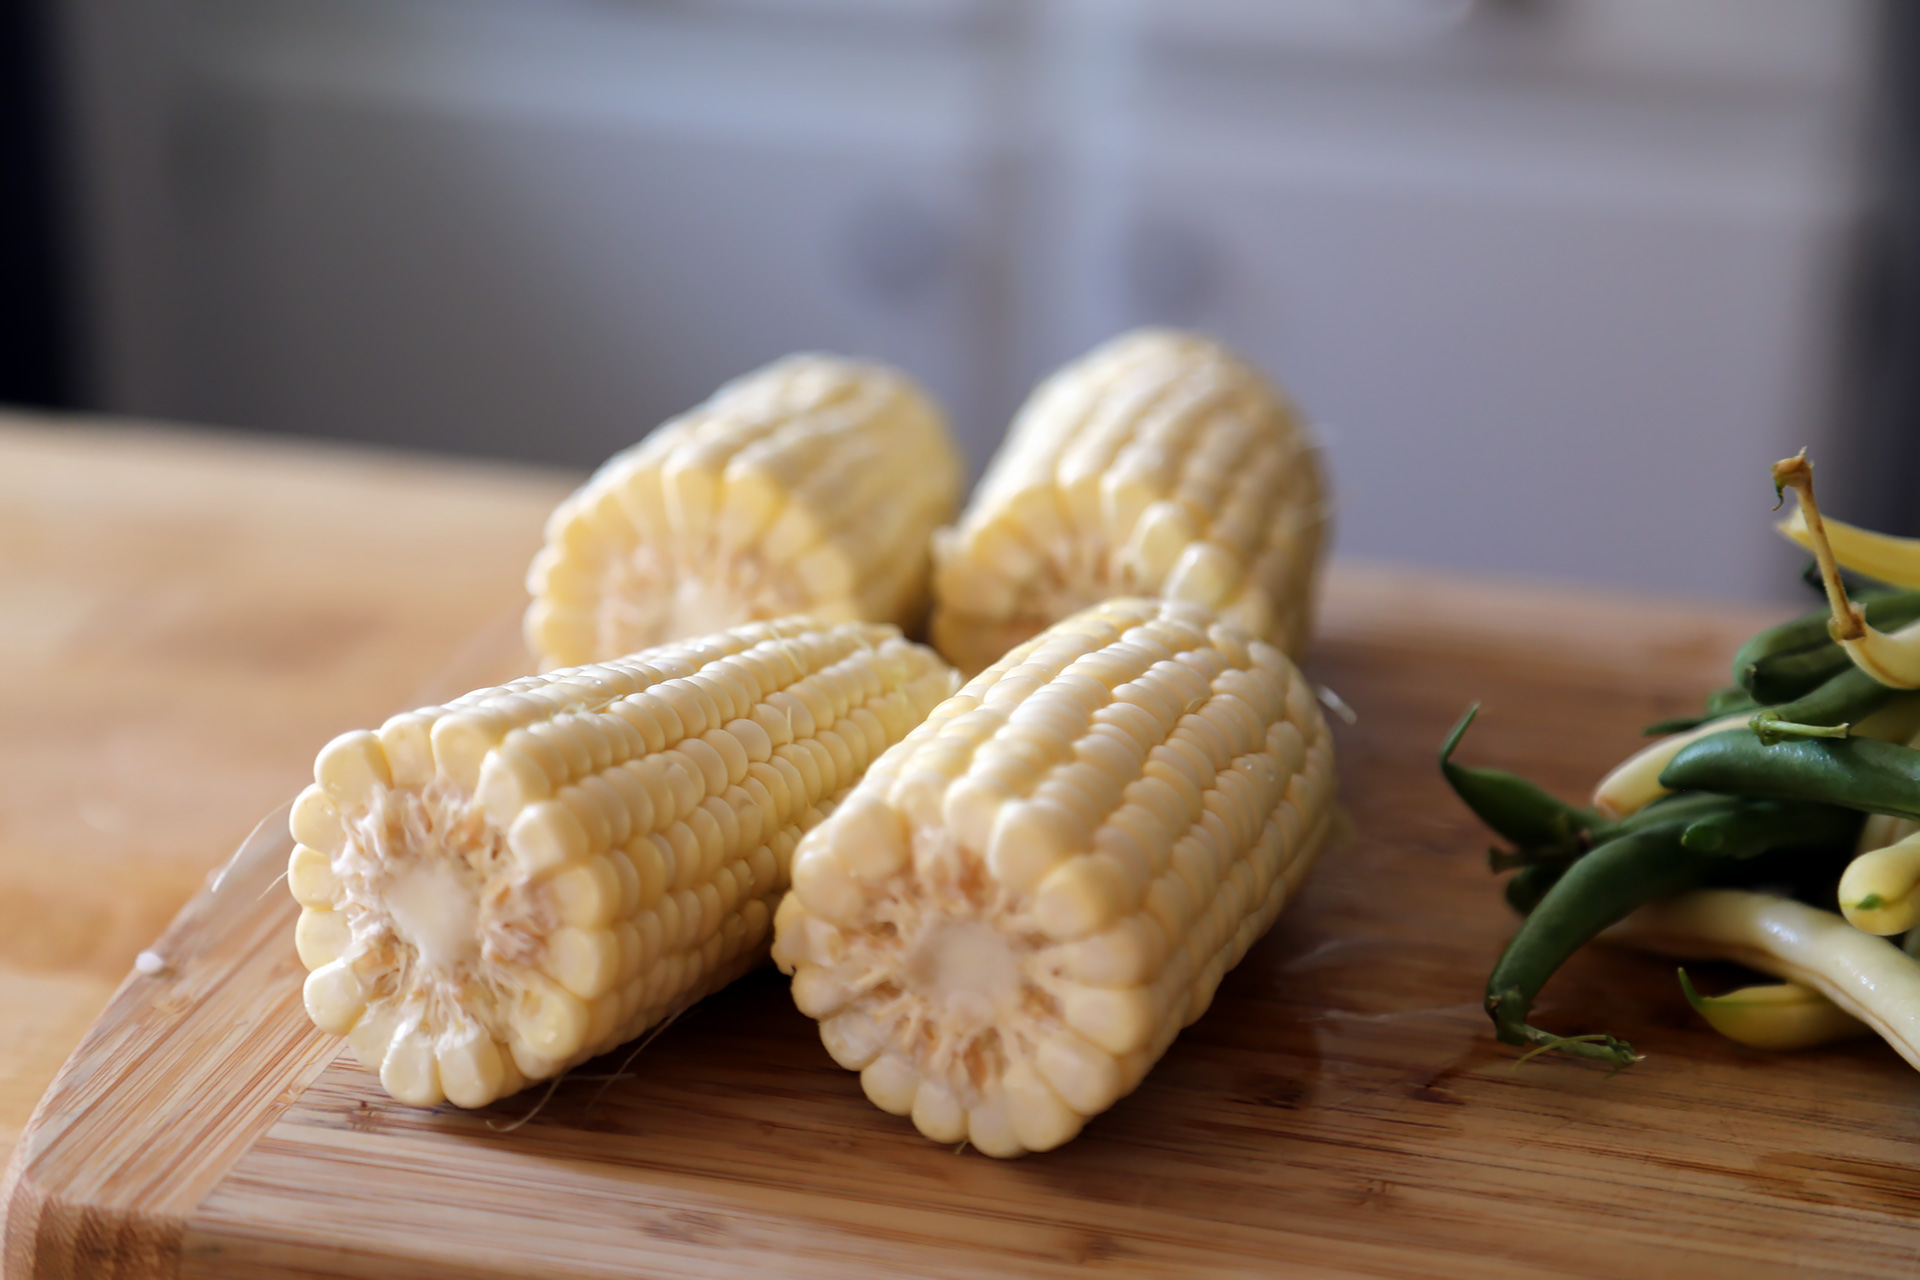 To cut the kernels off the cob, snap or cut the cob in half crosswise.